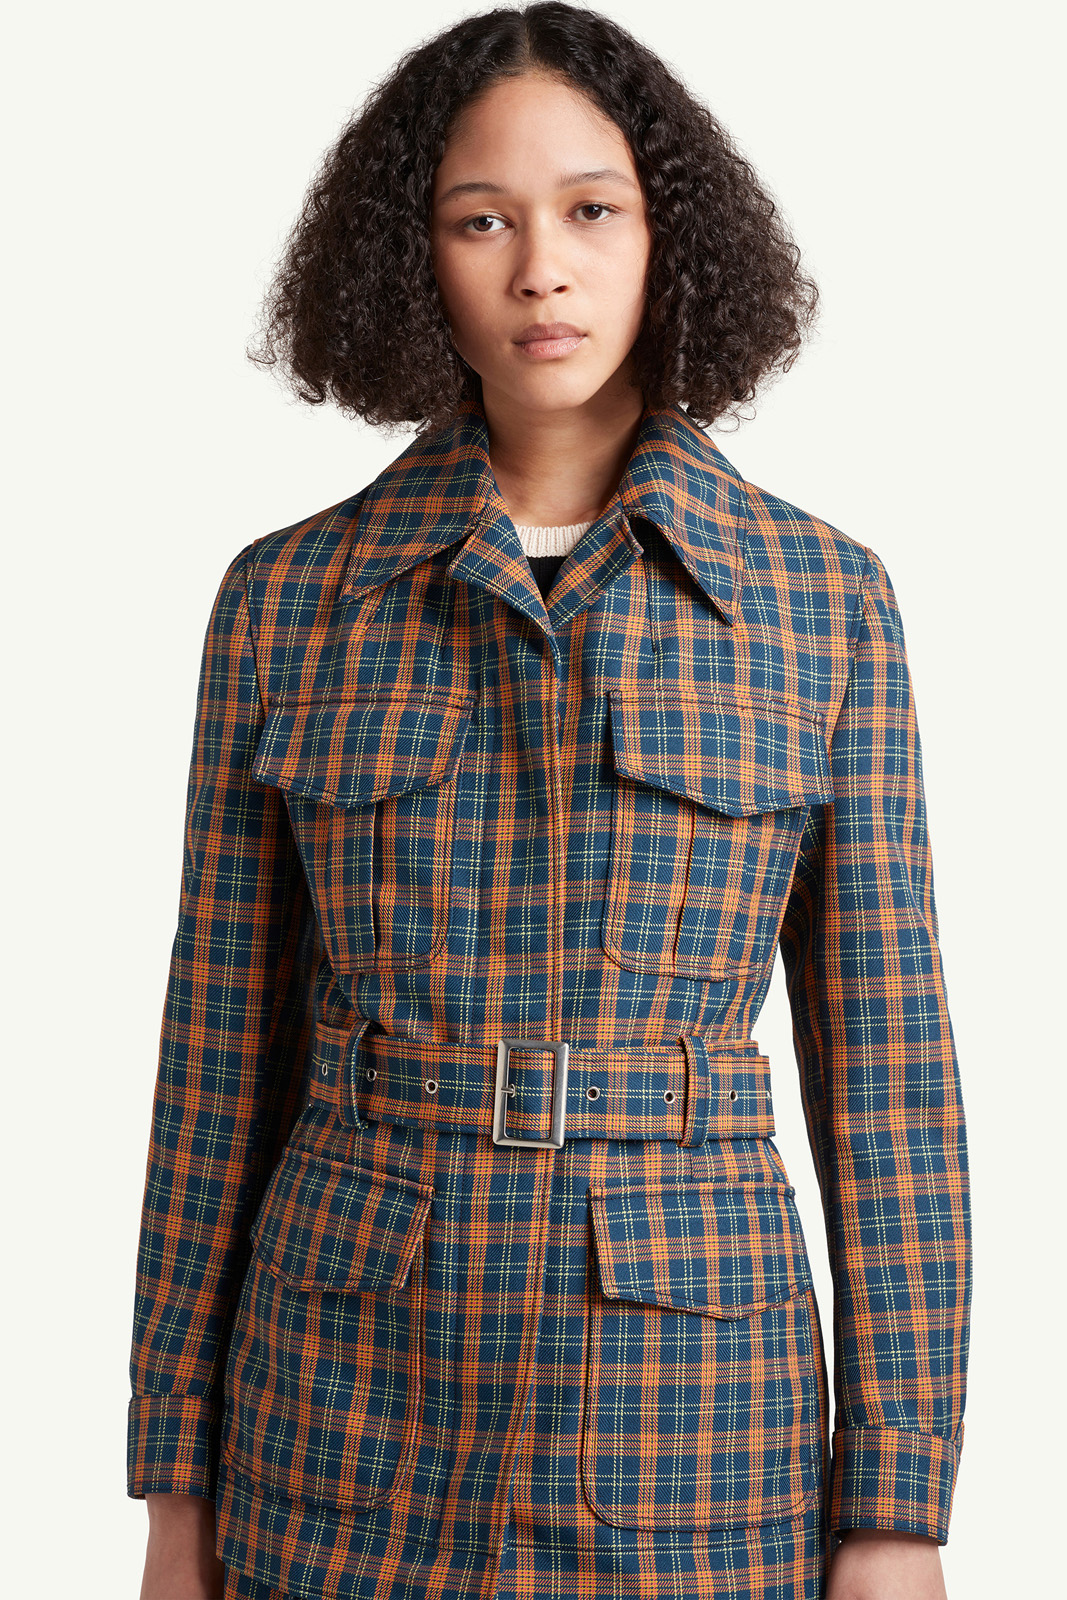 close up shot of Womenswear model wearing light grey, brown checkered jacket and skirt by Wales Bonner | e-Commerce Photography London | LRP